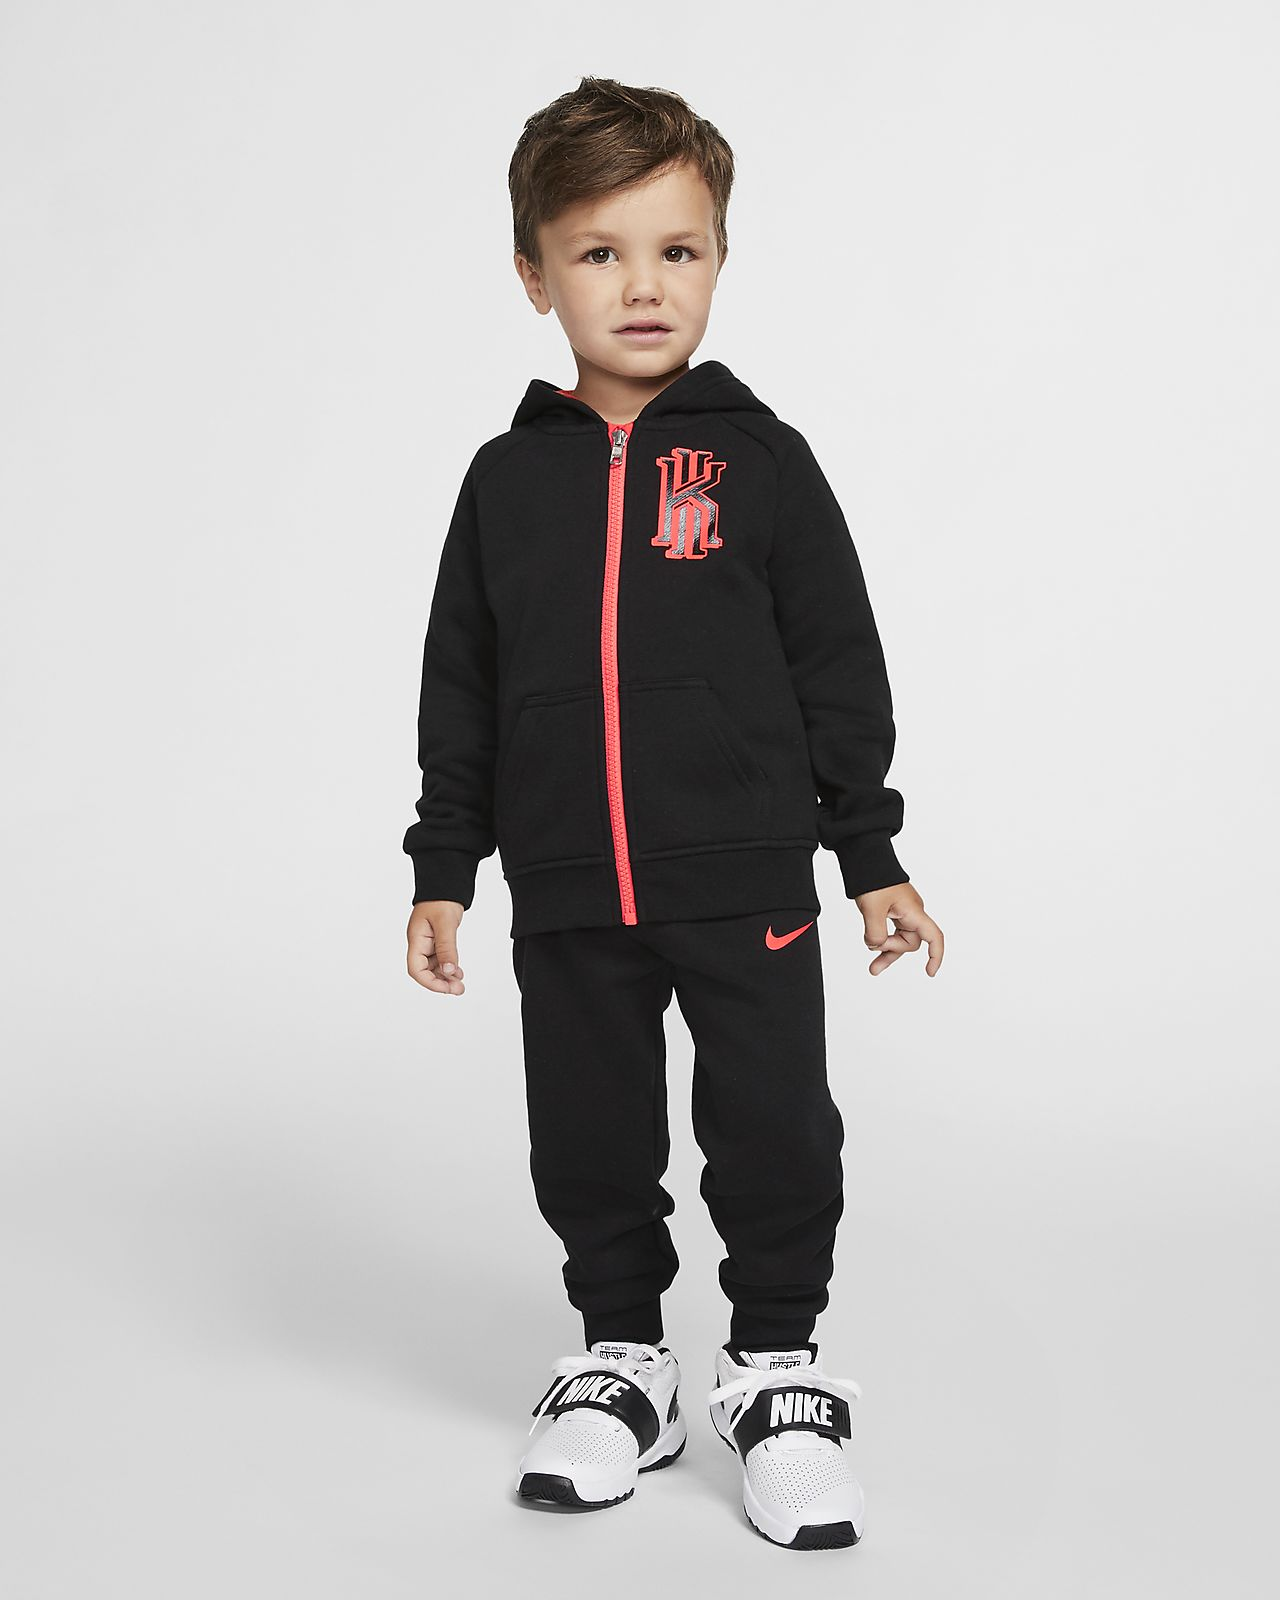 Kyrie Toddler Hoodie and Joggers Set